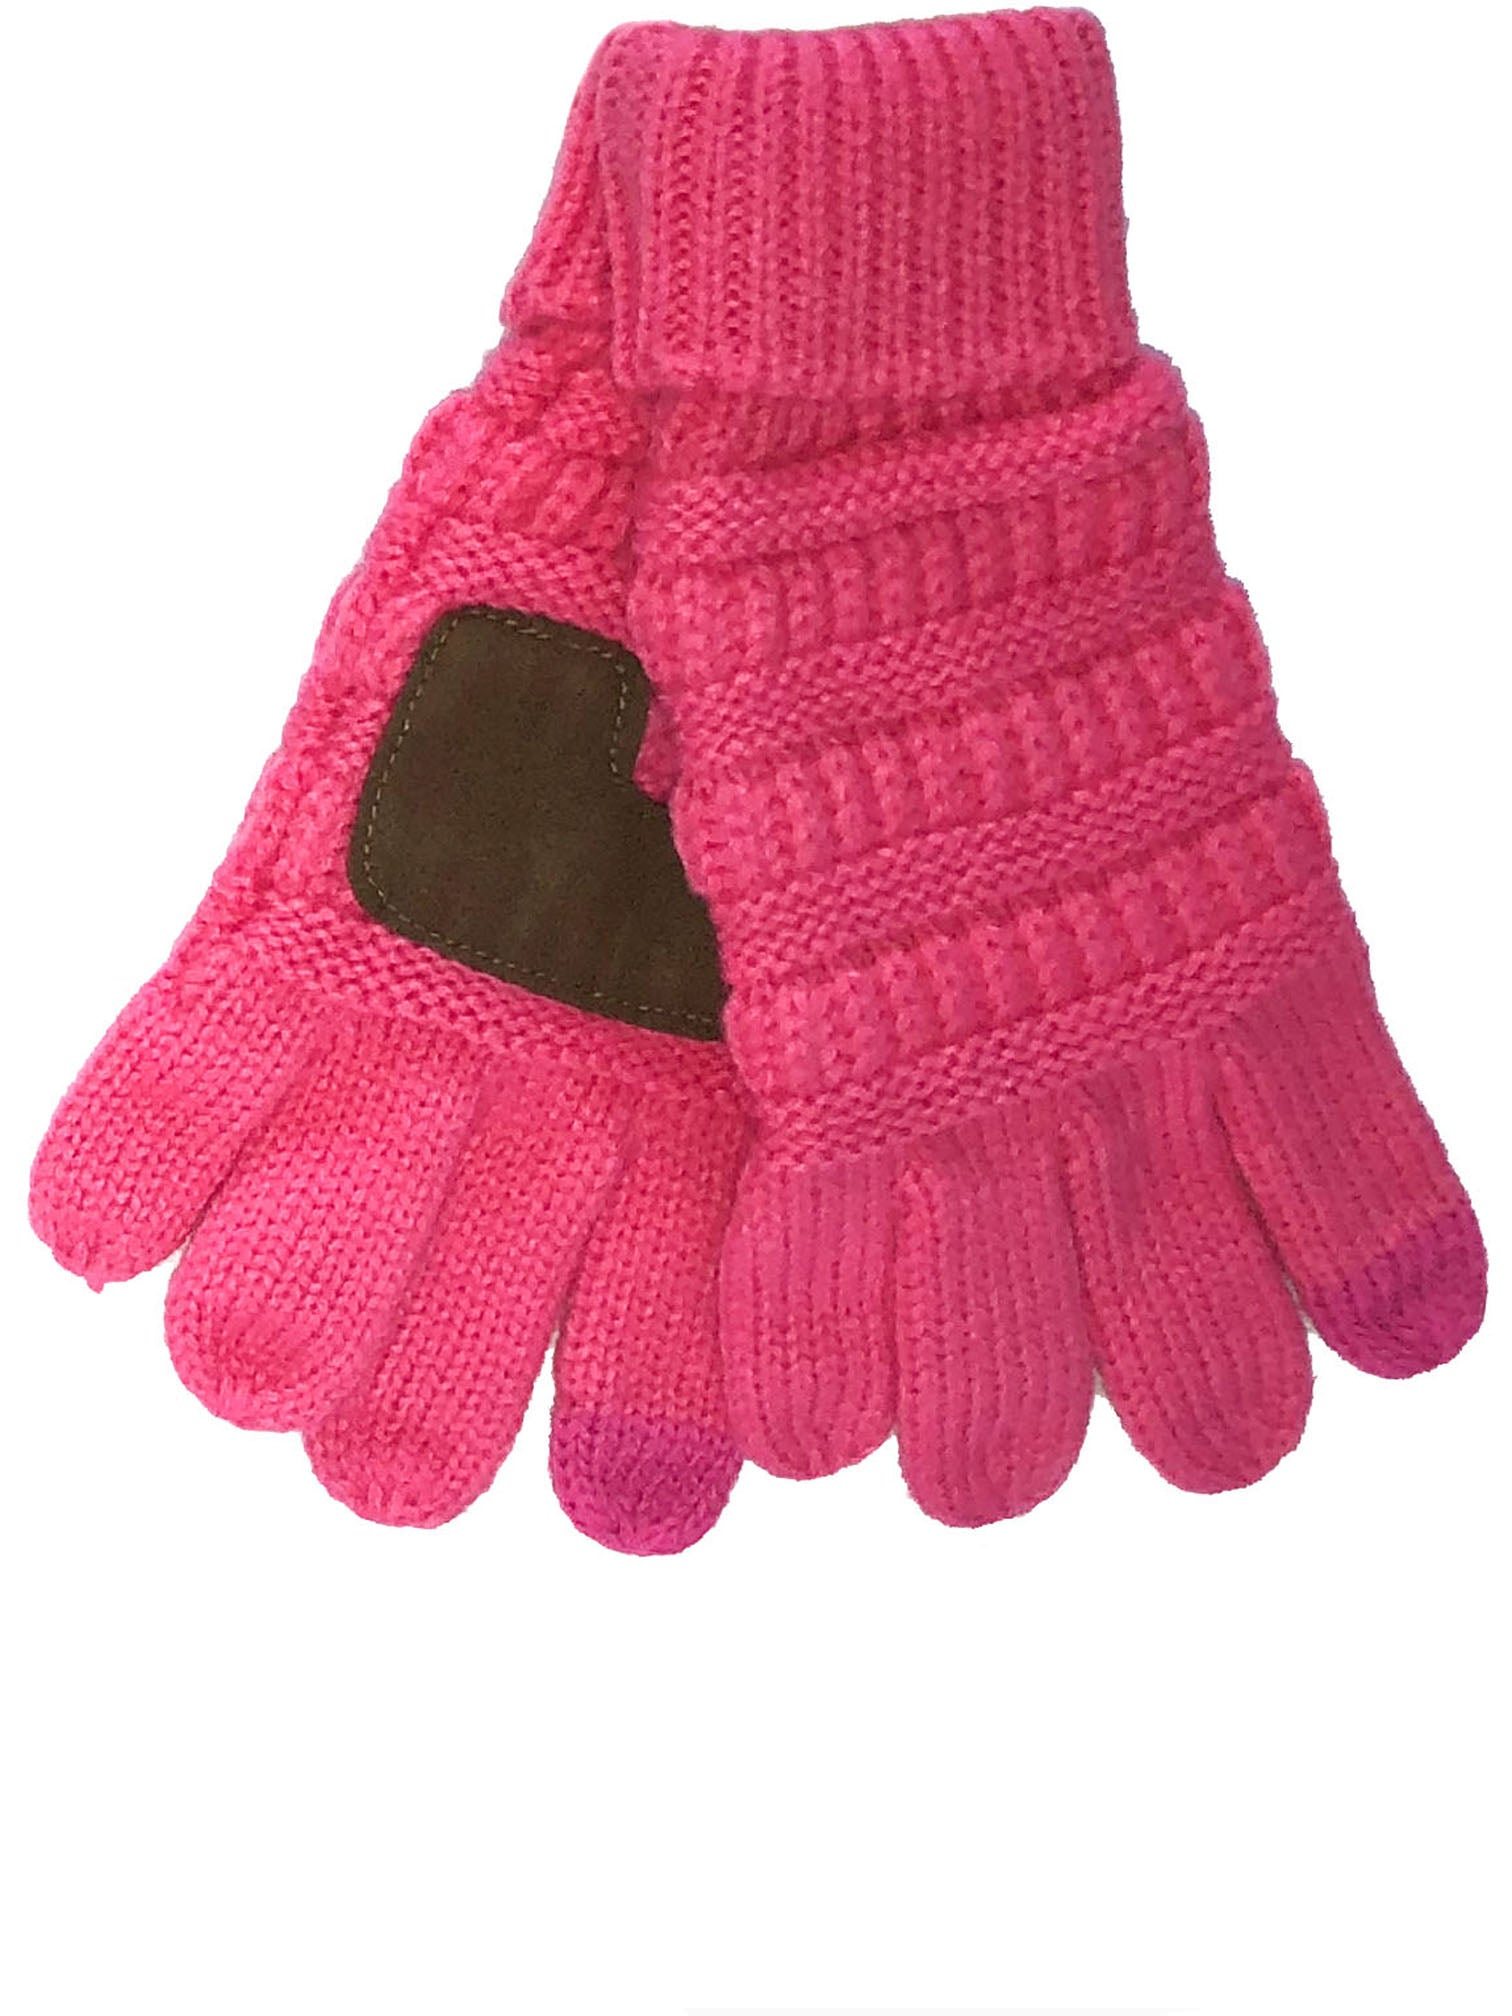 GL-20 KIDS NEW CANDY PINK GLOVES